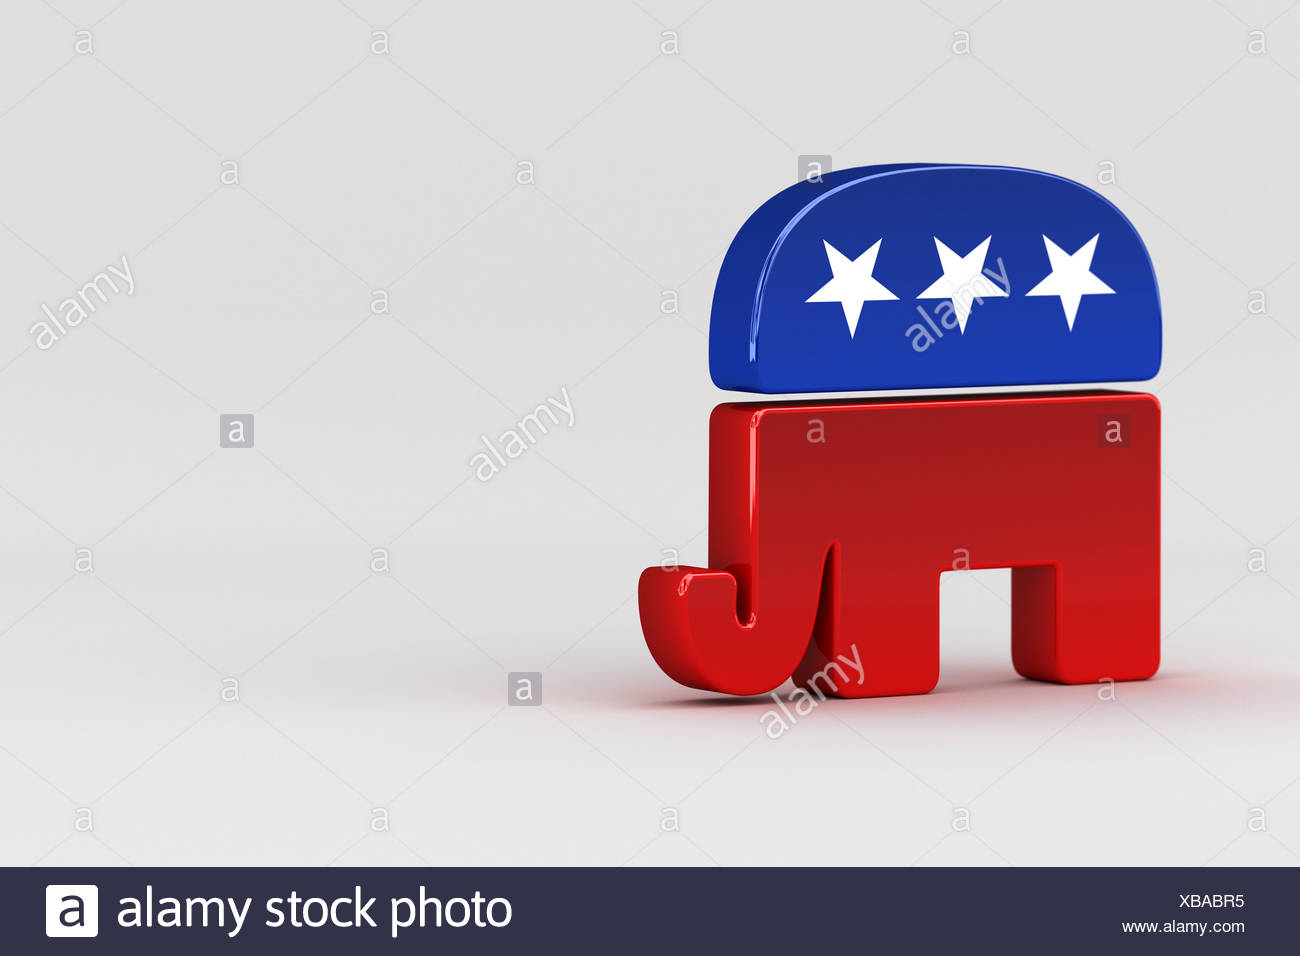 Republican elephant, mascot of the Republican Party, USA - Stock Image